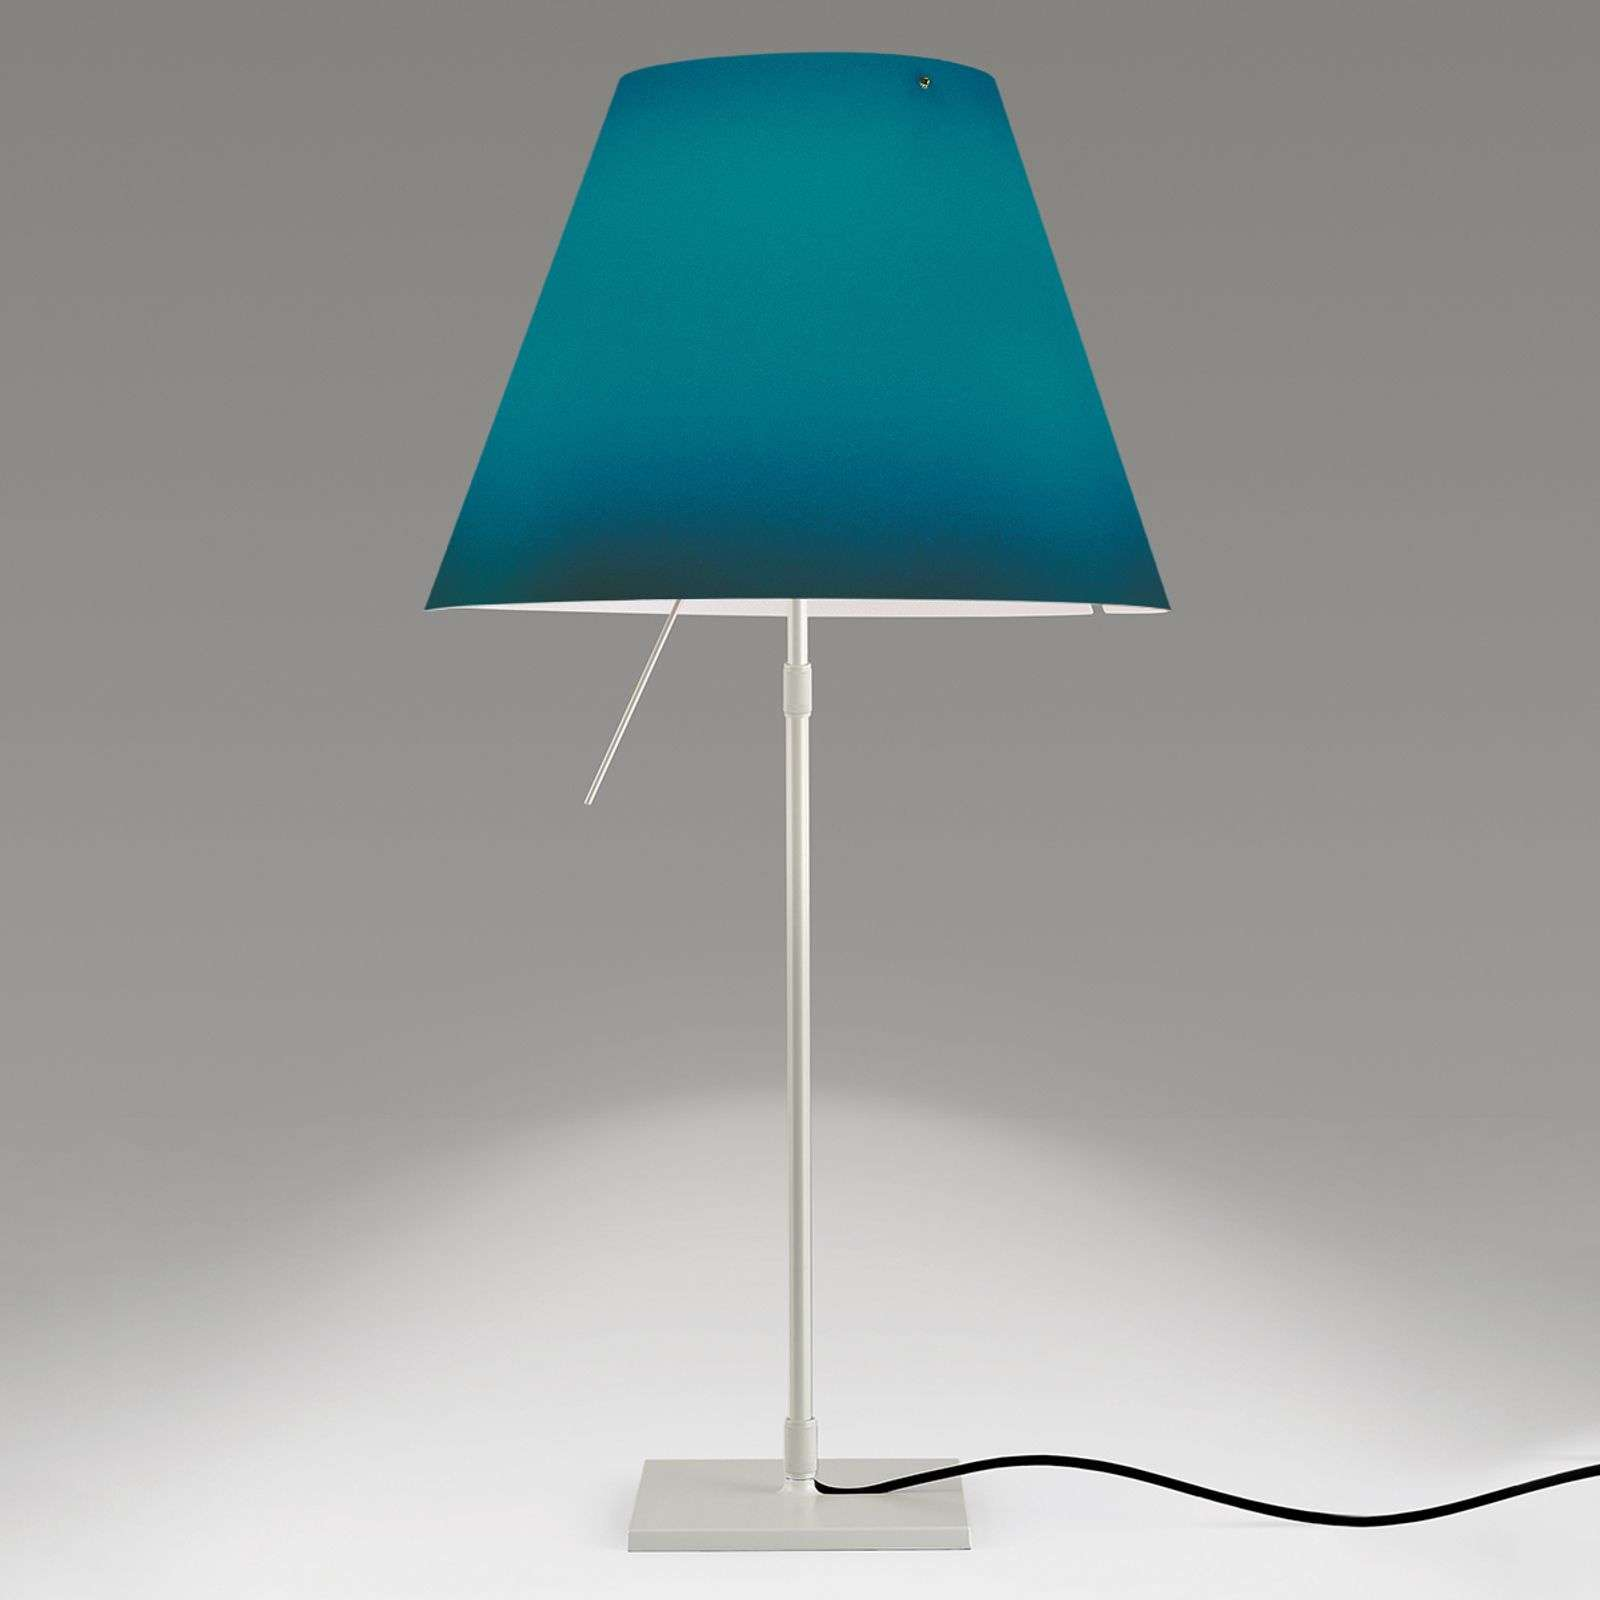 Decoratieve LED tafellamp Constanza in blauw